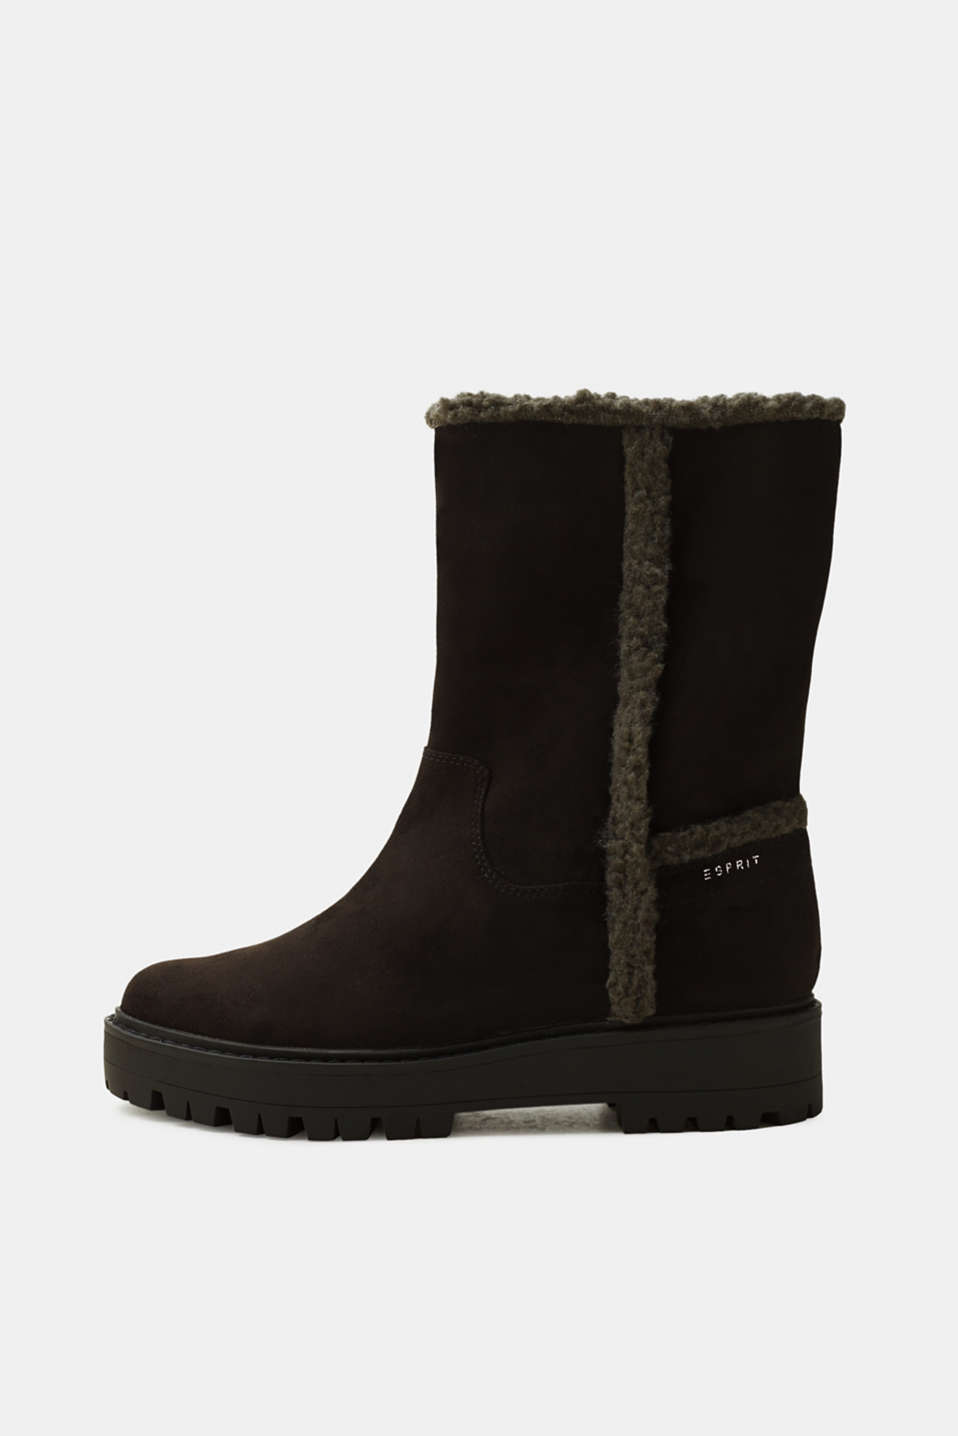 Esprit - Lined faux suede winter boots